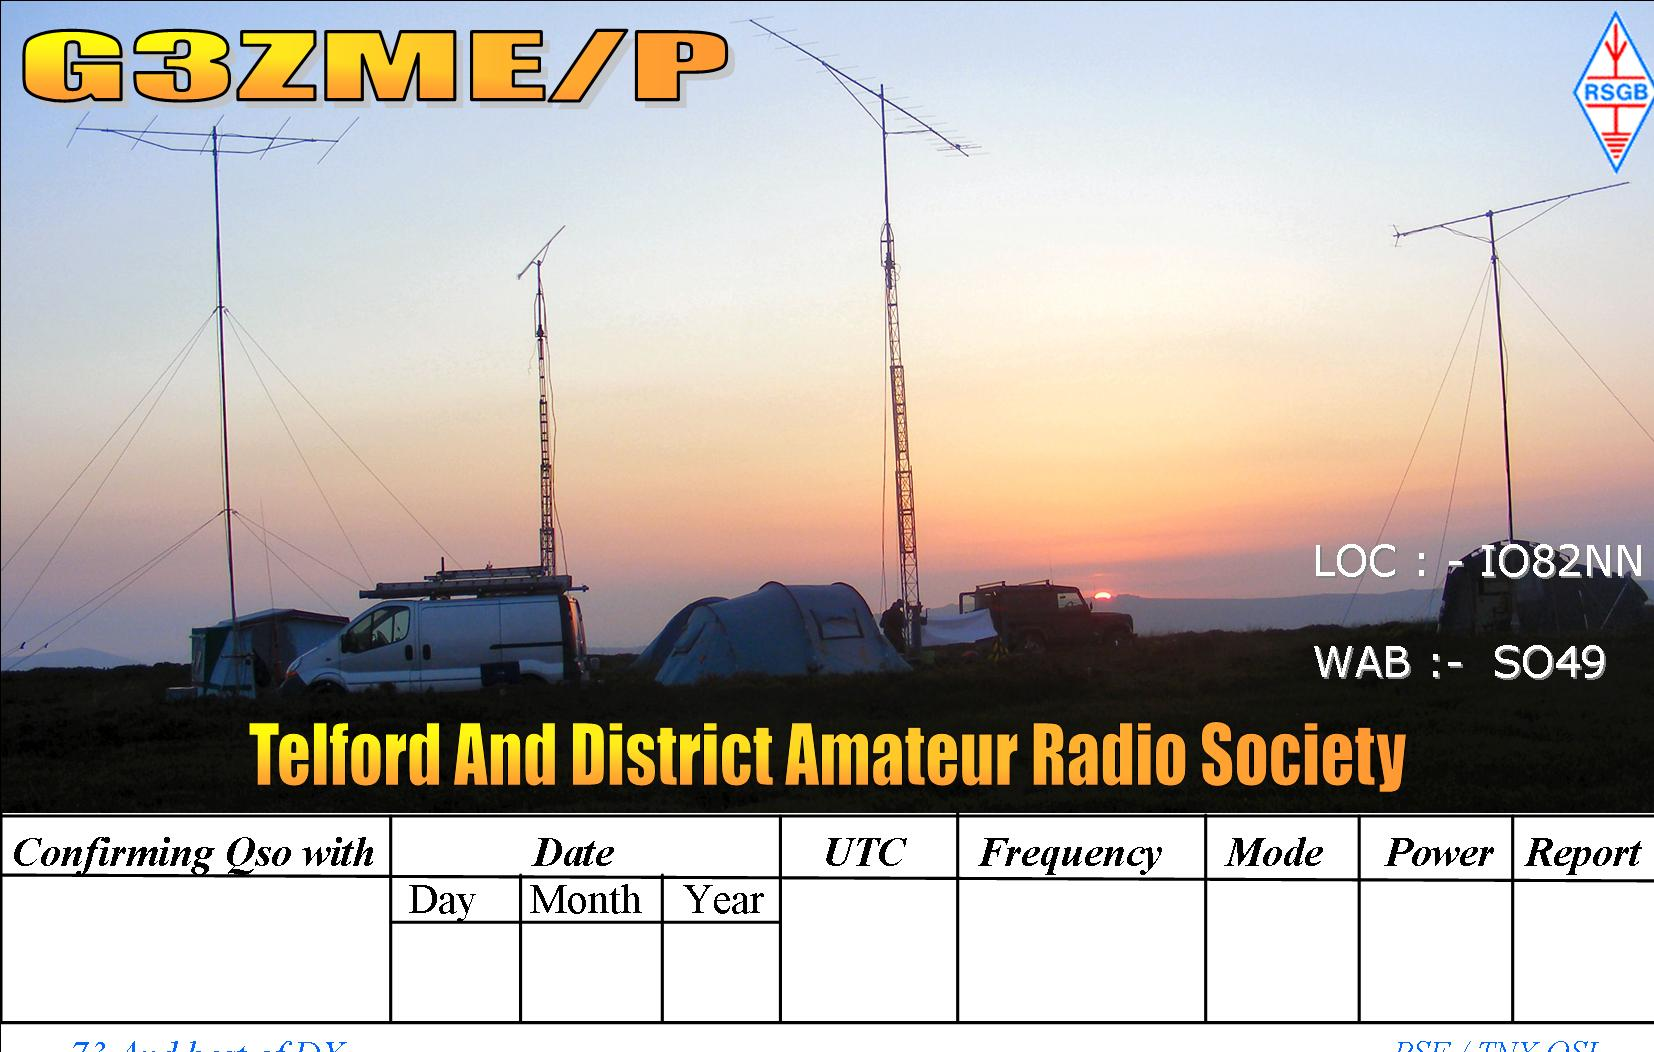 QSL image for G3ZME